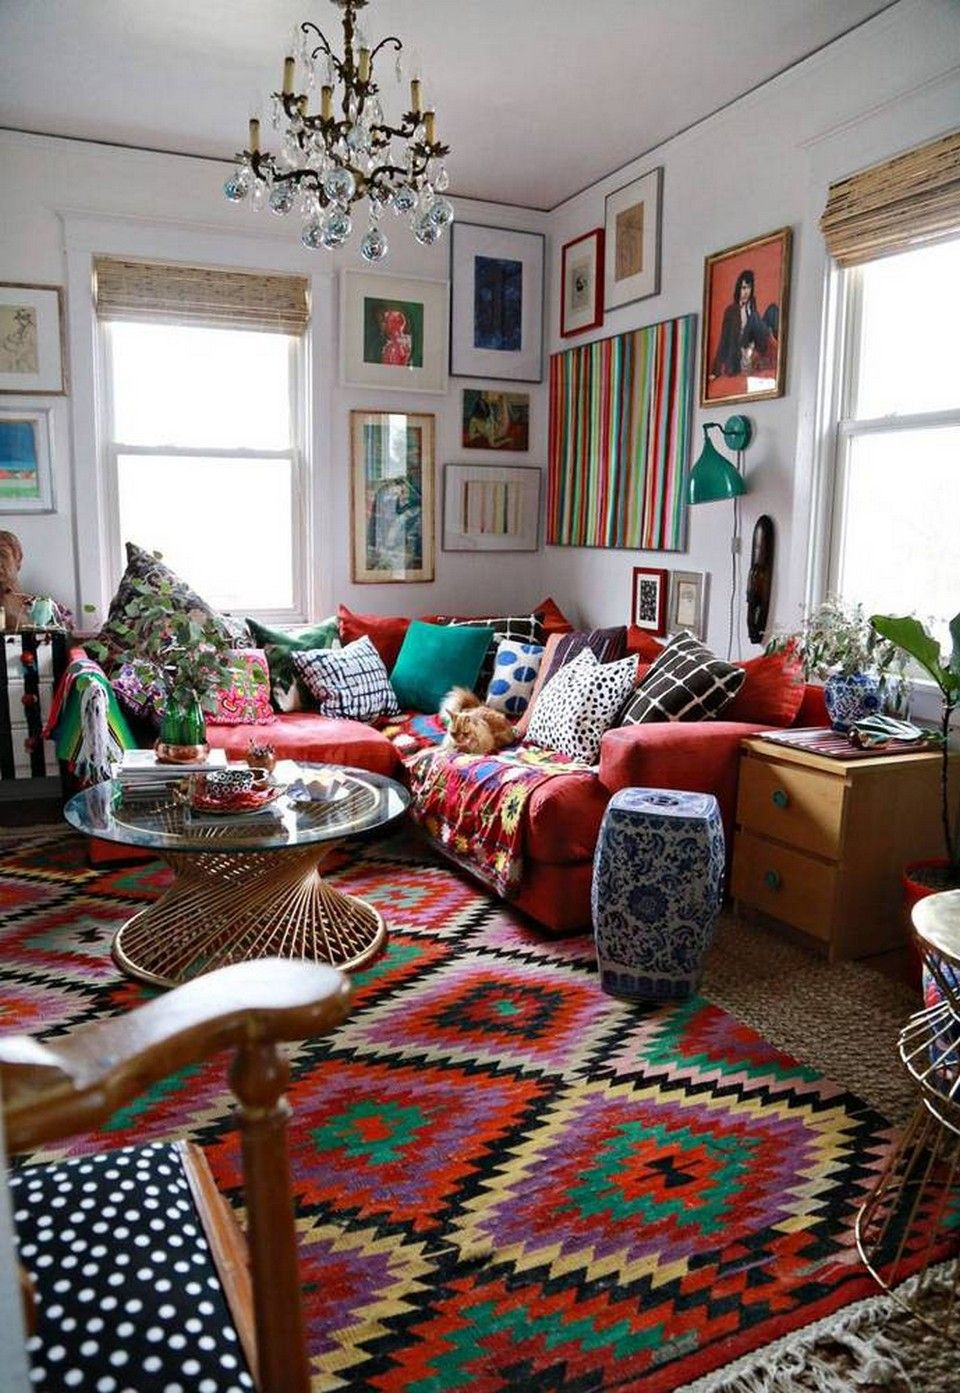 2018 Bohemian Interior Design Trends: 90+ Amazing Tips And Ideas